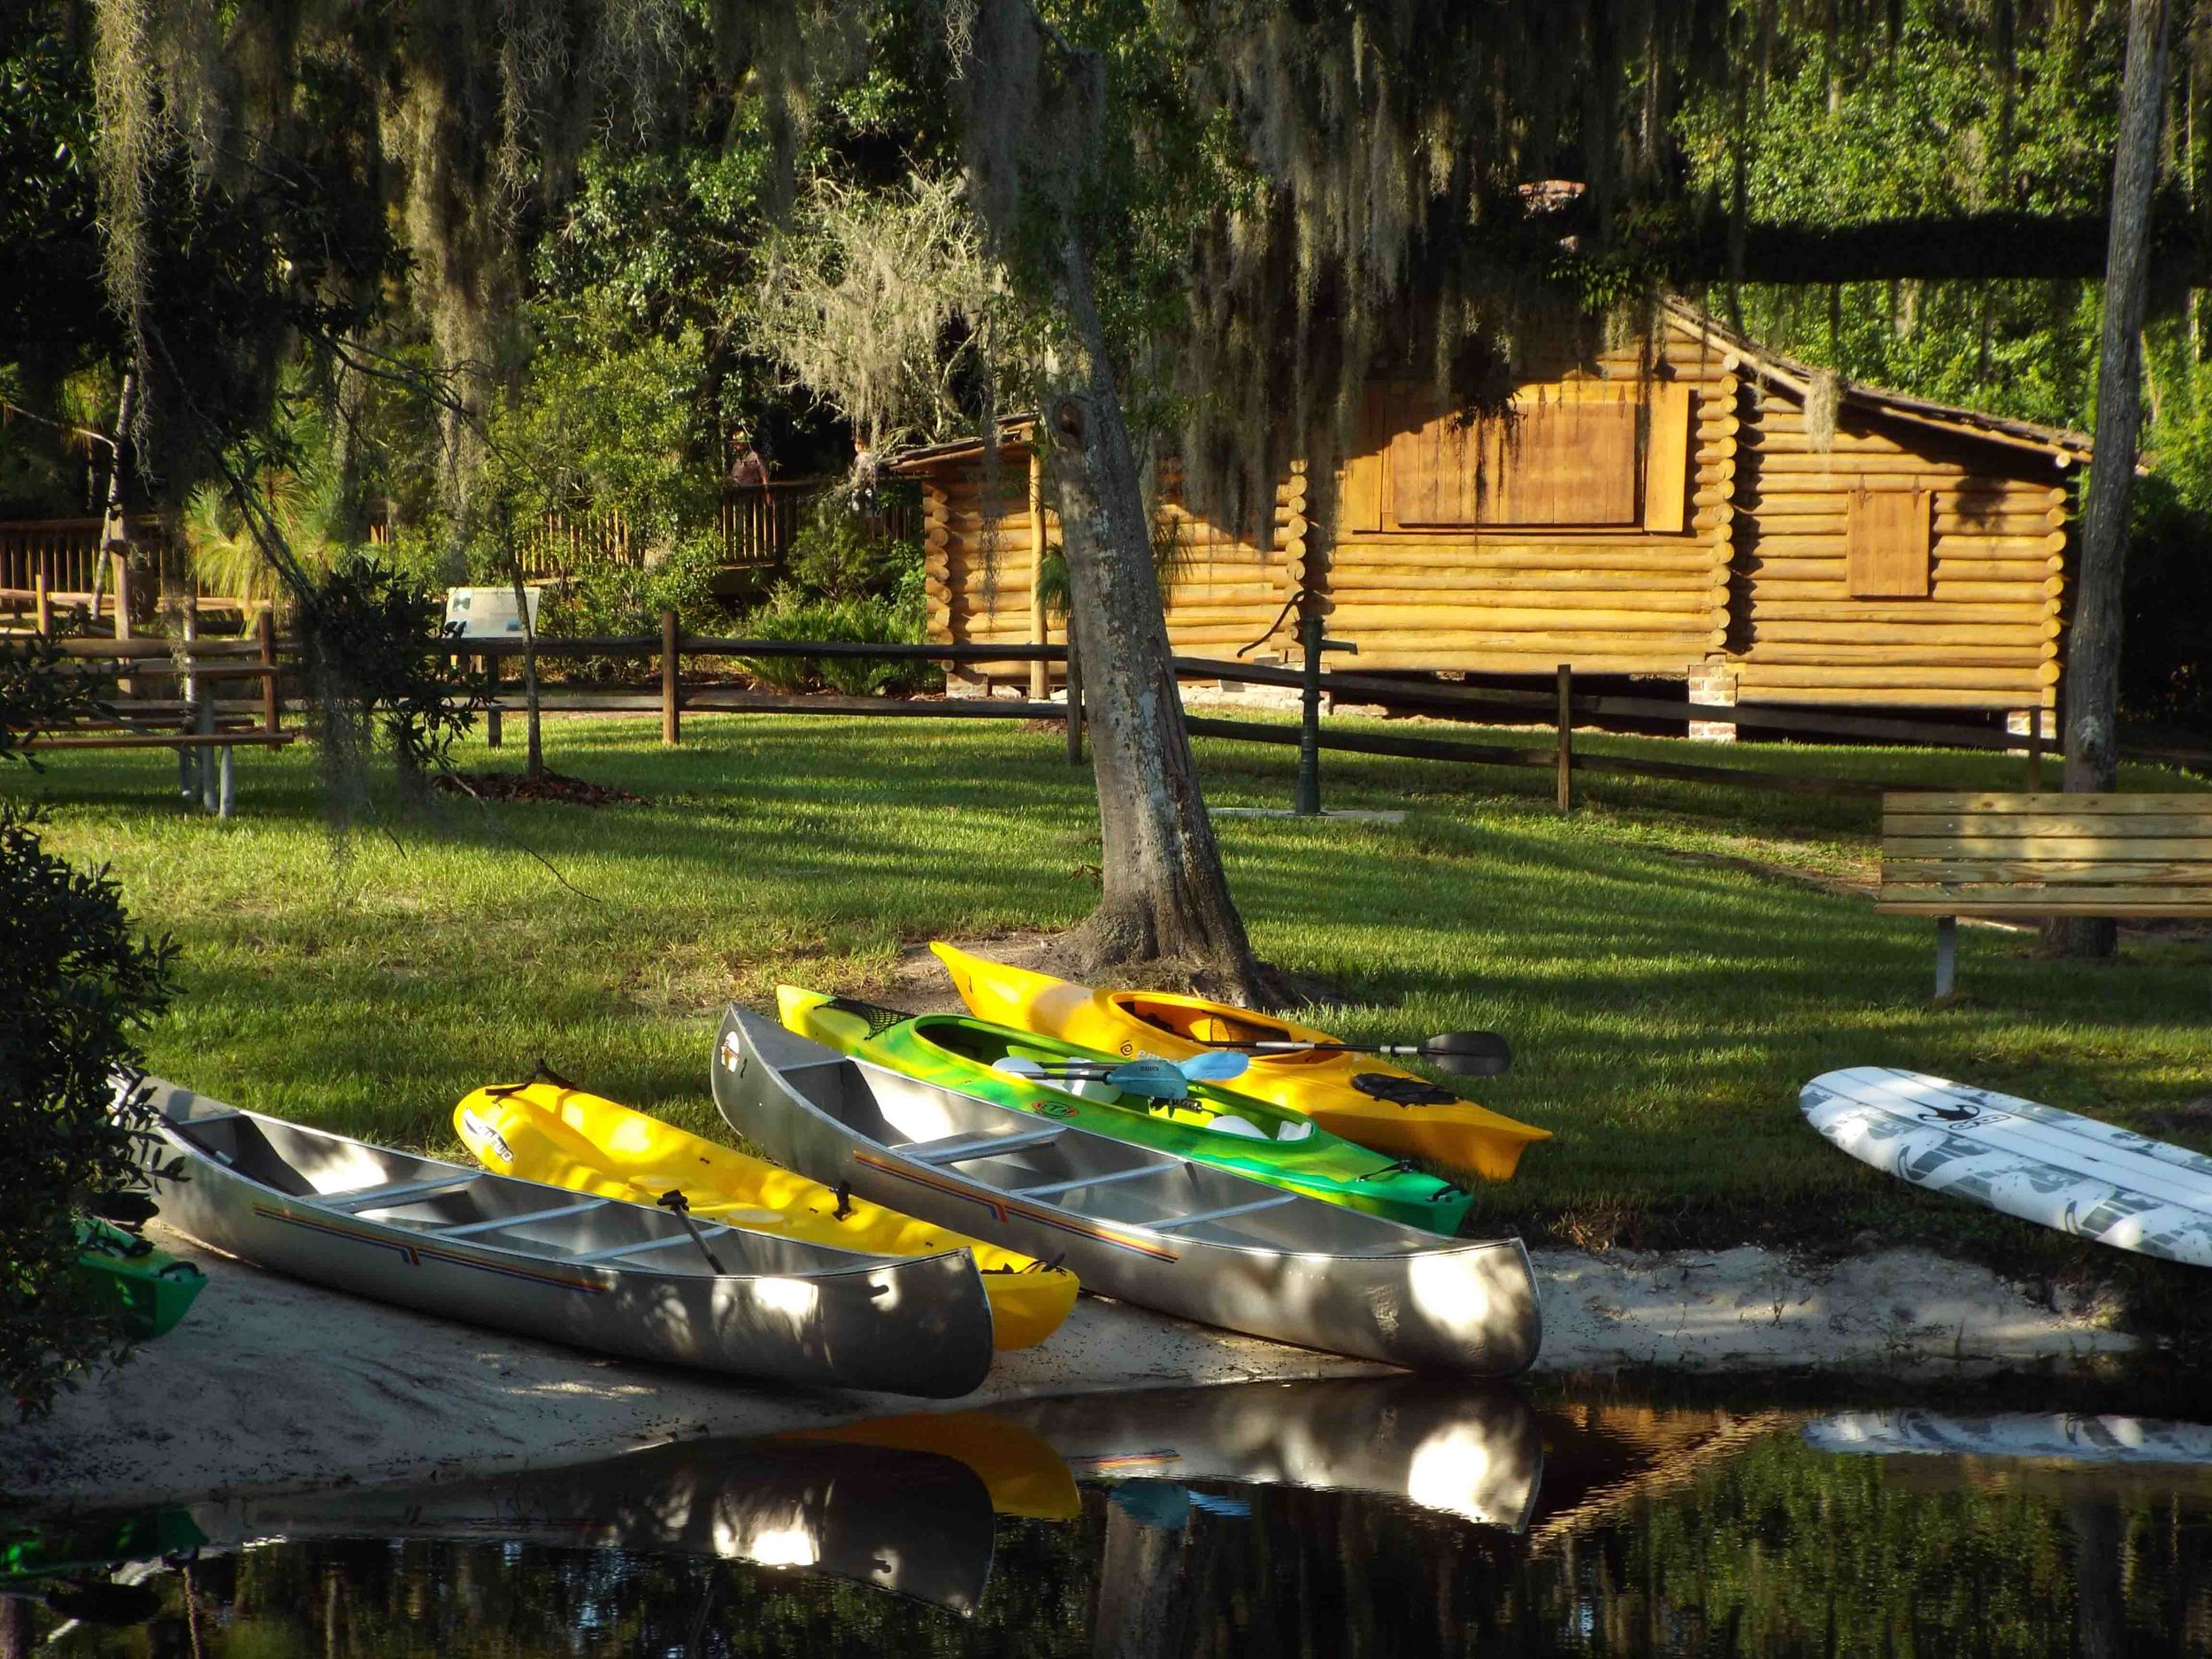 This area now serves as a mixed used for modern recreation enthusiasts and history buffs.